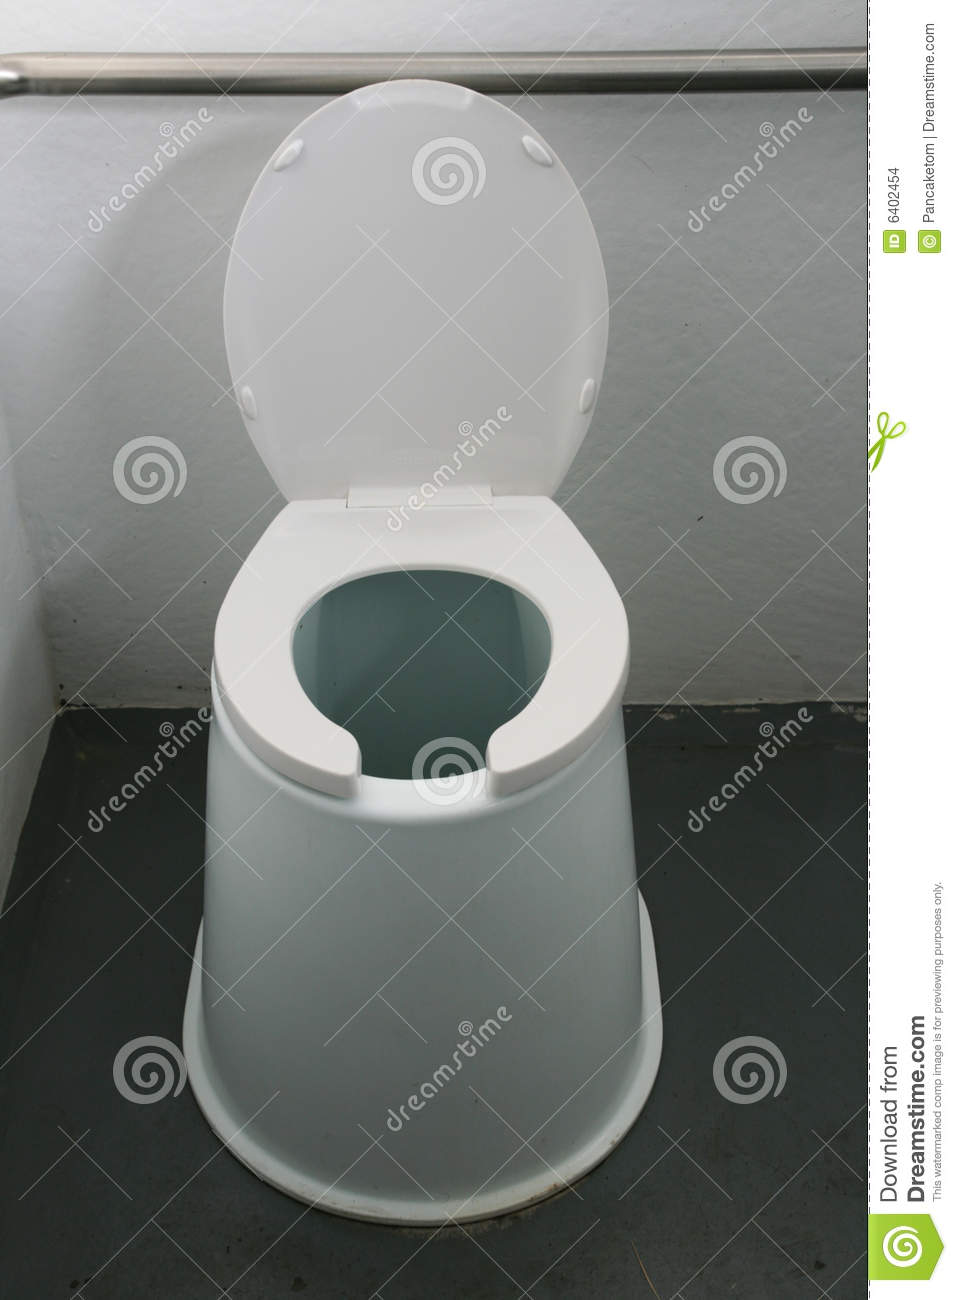 Stock Illustration Toilet Black Outline Vector White Background Image48570371 besides Be2f2922fcb7cc3a Lowe039s Tiny Houses Small Cabins Tiny Houses together with The Ultimate Underground Fort A Diy Pirate Cave From 1929 together with Sunset Prefab Modern Cottage furthermore Diy Outhouse Plan And Tutorial. on modern outhouse plans